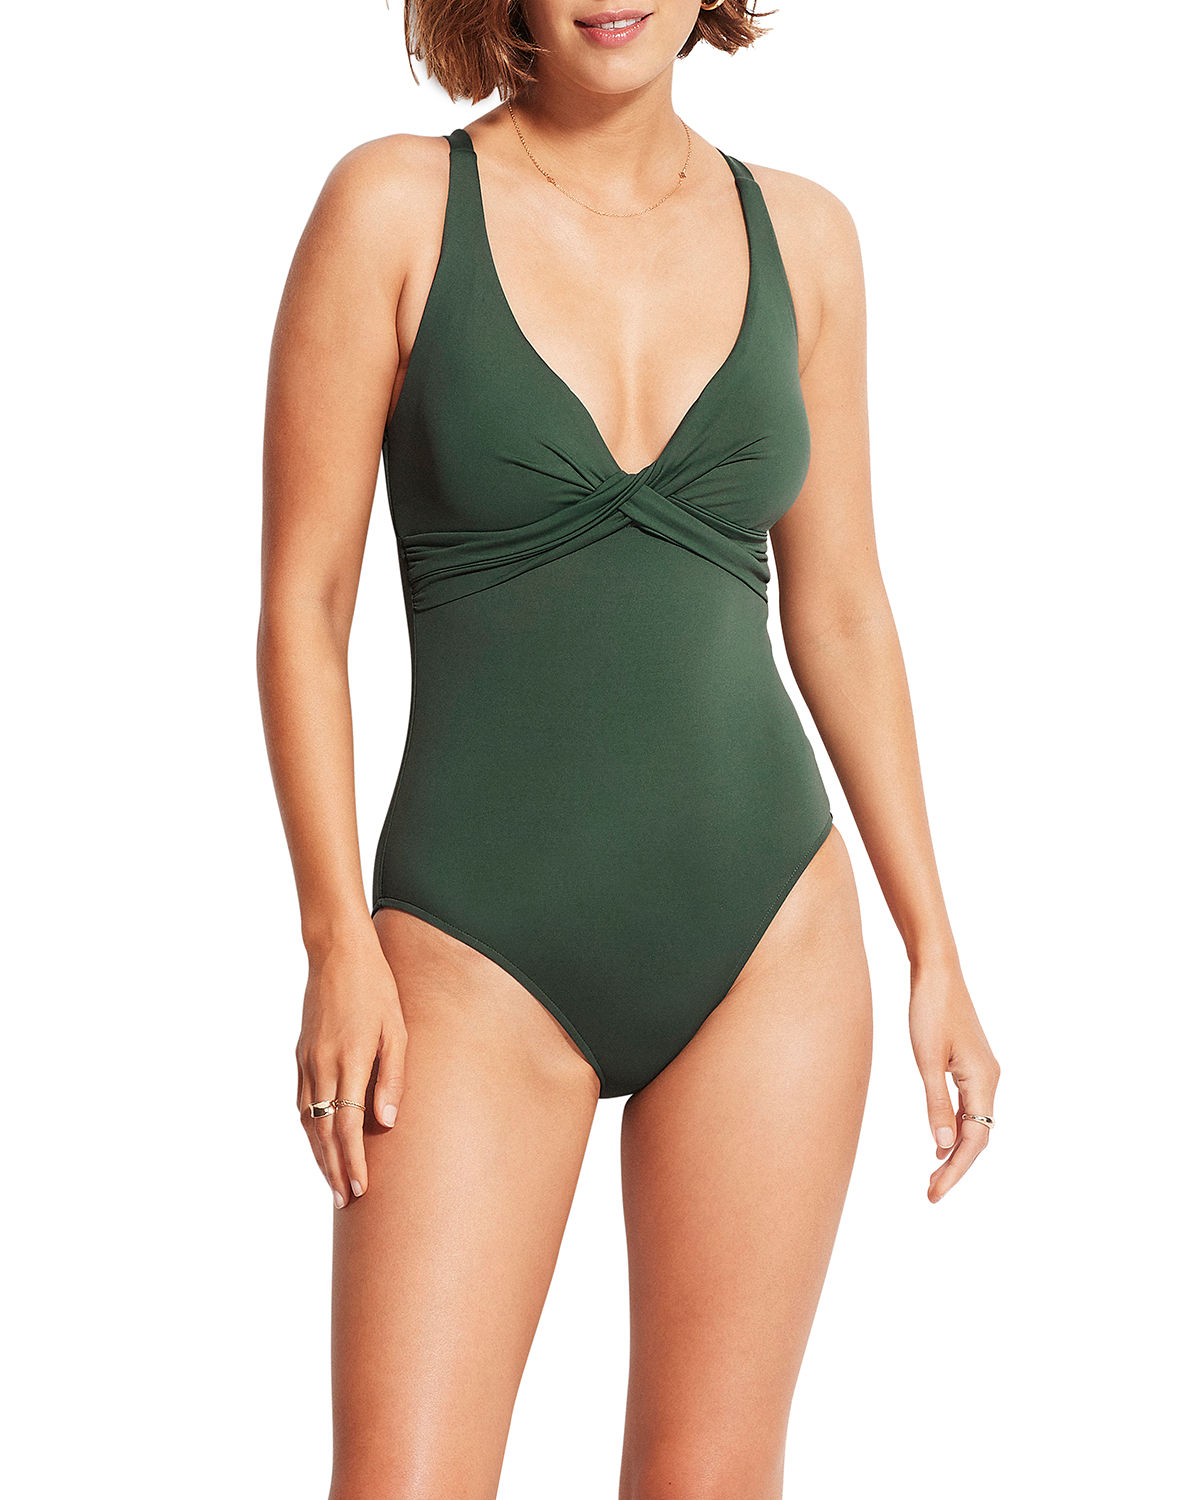 Seafolly WRAP-FRONT SOLID ONE-PIECE SWIMSUIT (DD CUP)